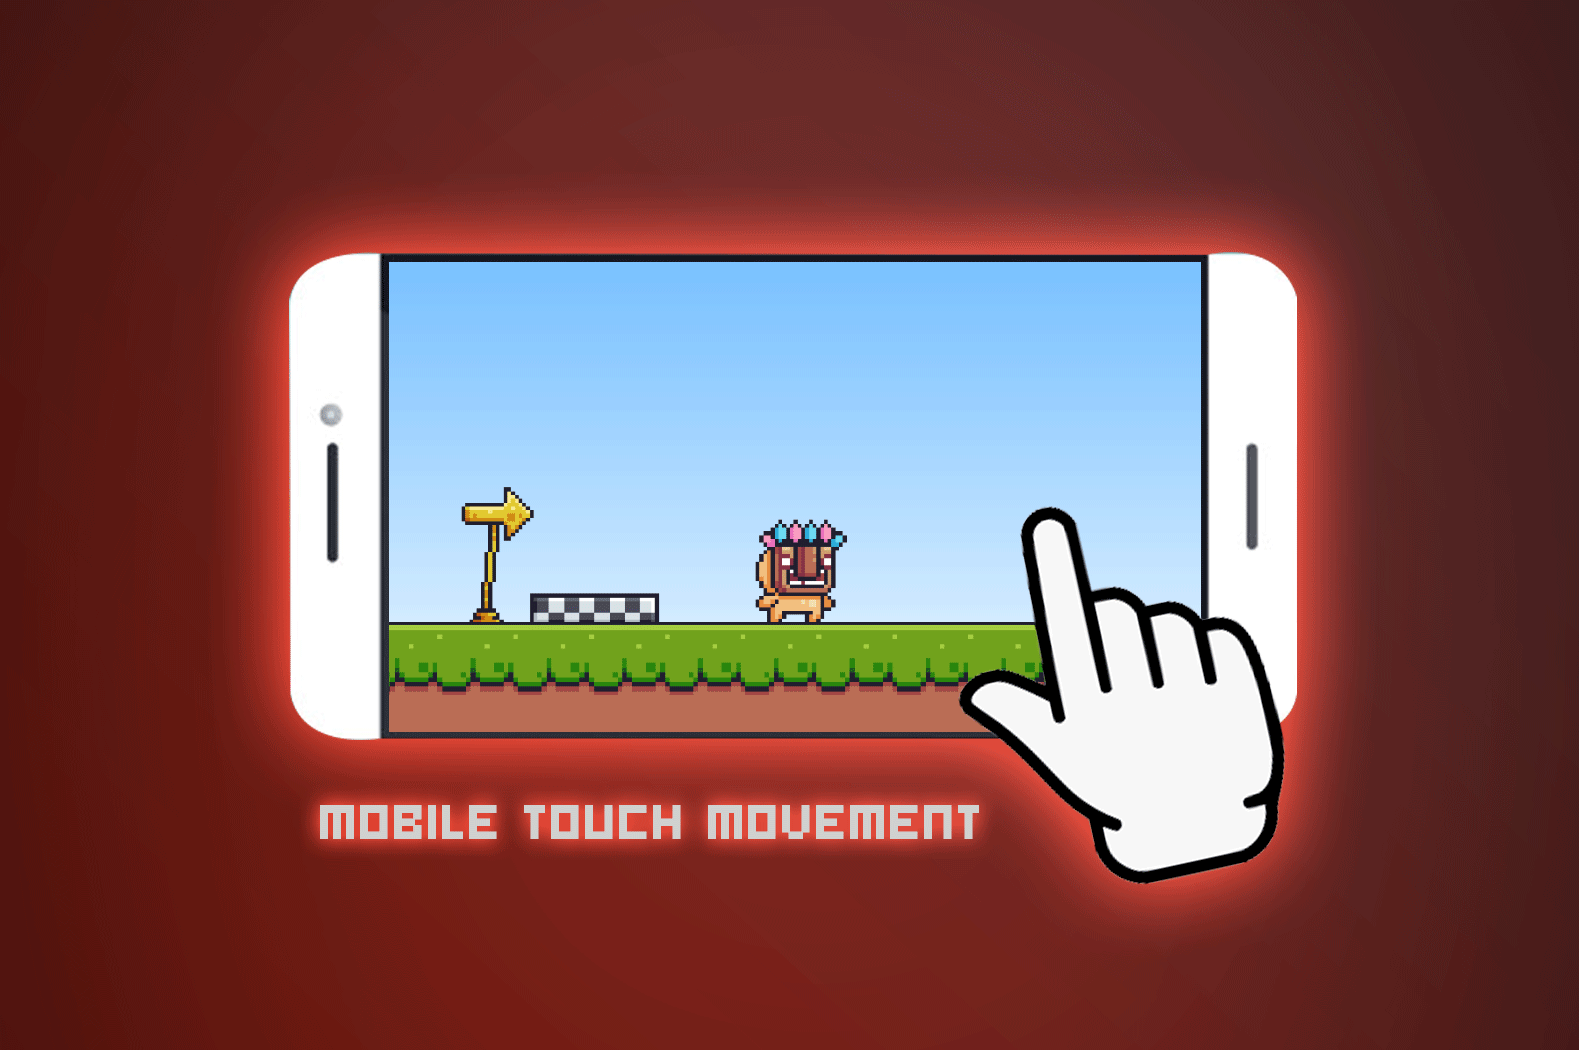 Unity Tutorials: How to Make Mobile Touch Movements